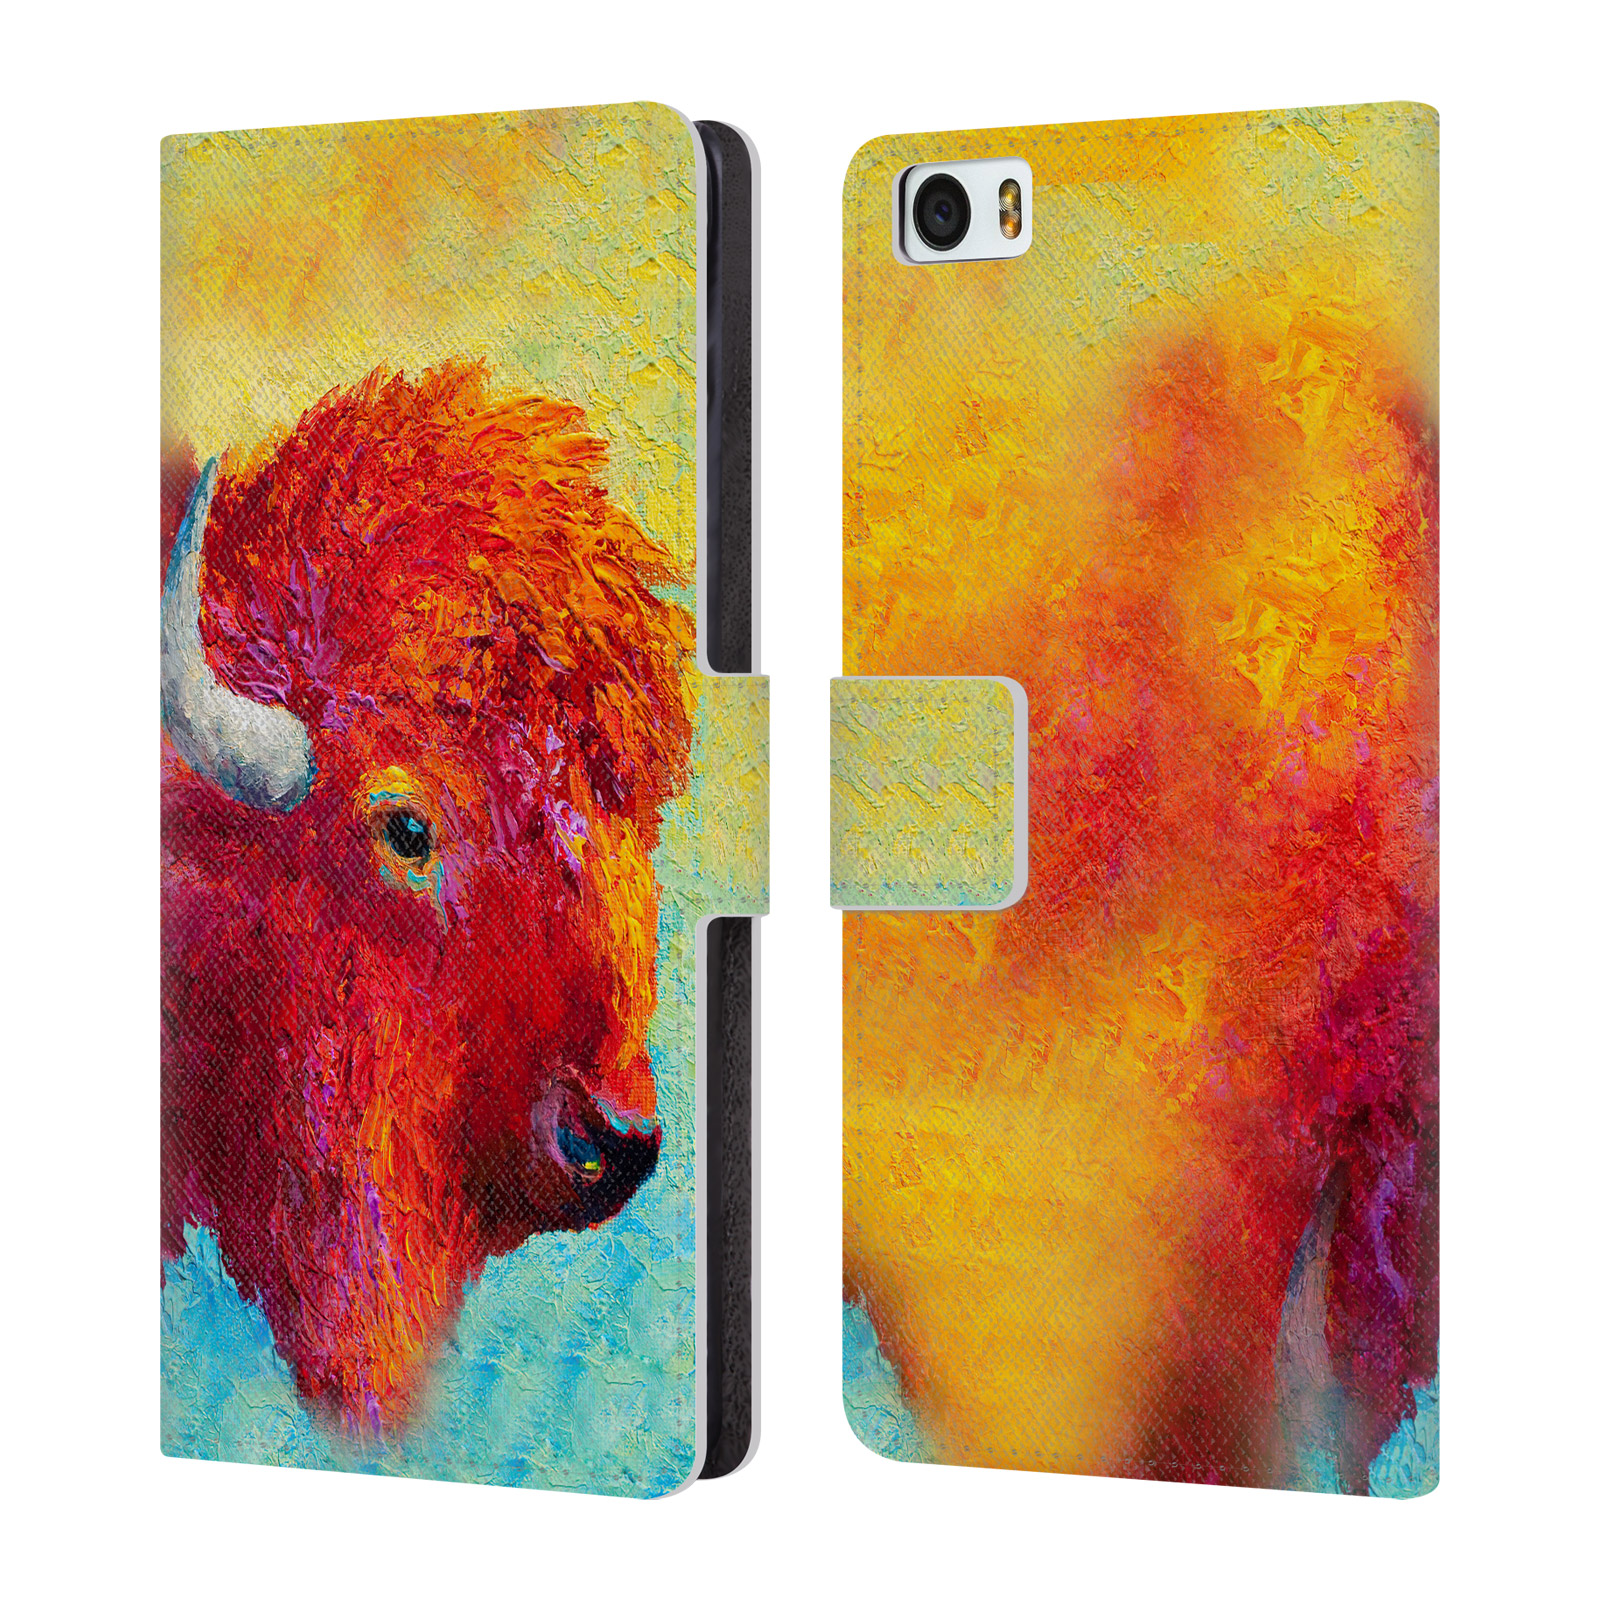 OFFICIAL-MARION-ROSE-BULL-LEATHER-BOOK-WALLET-CASE-COVER-FOR-XIAOMI-PHONES